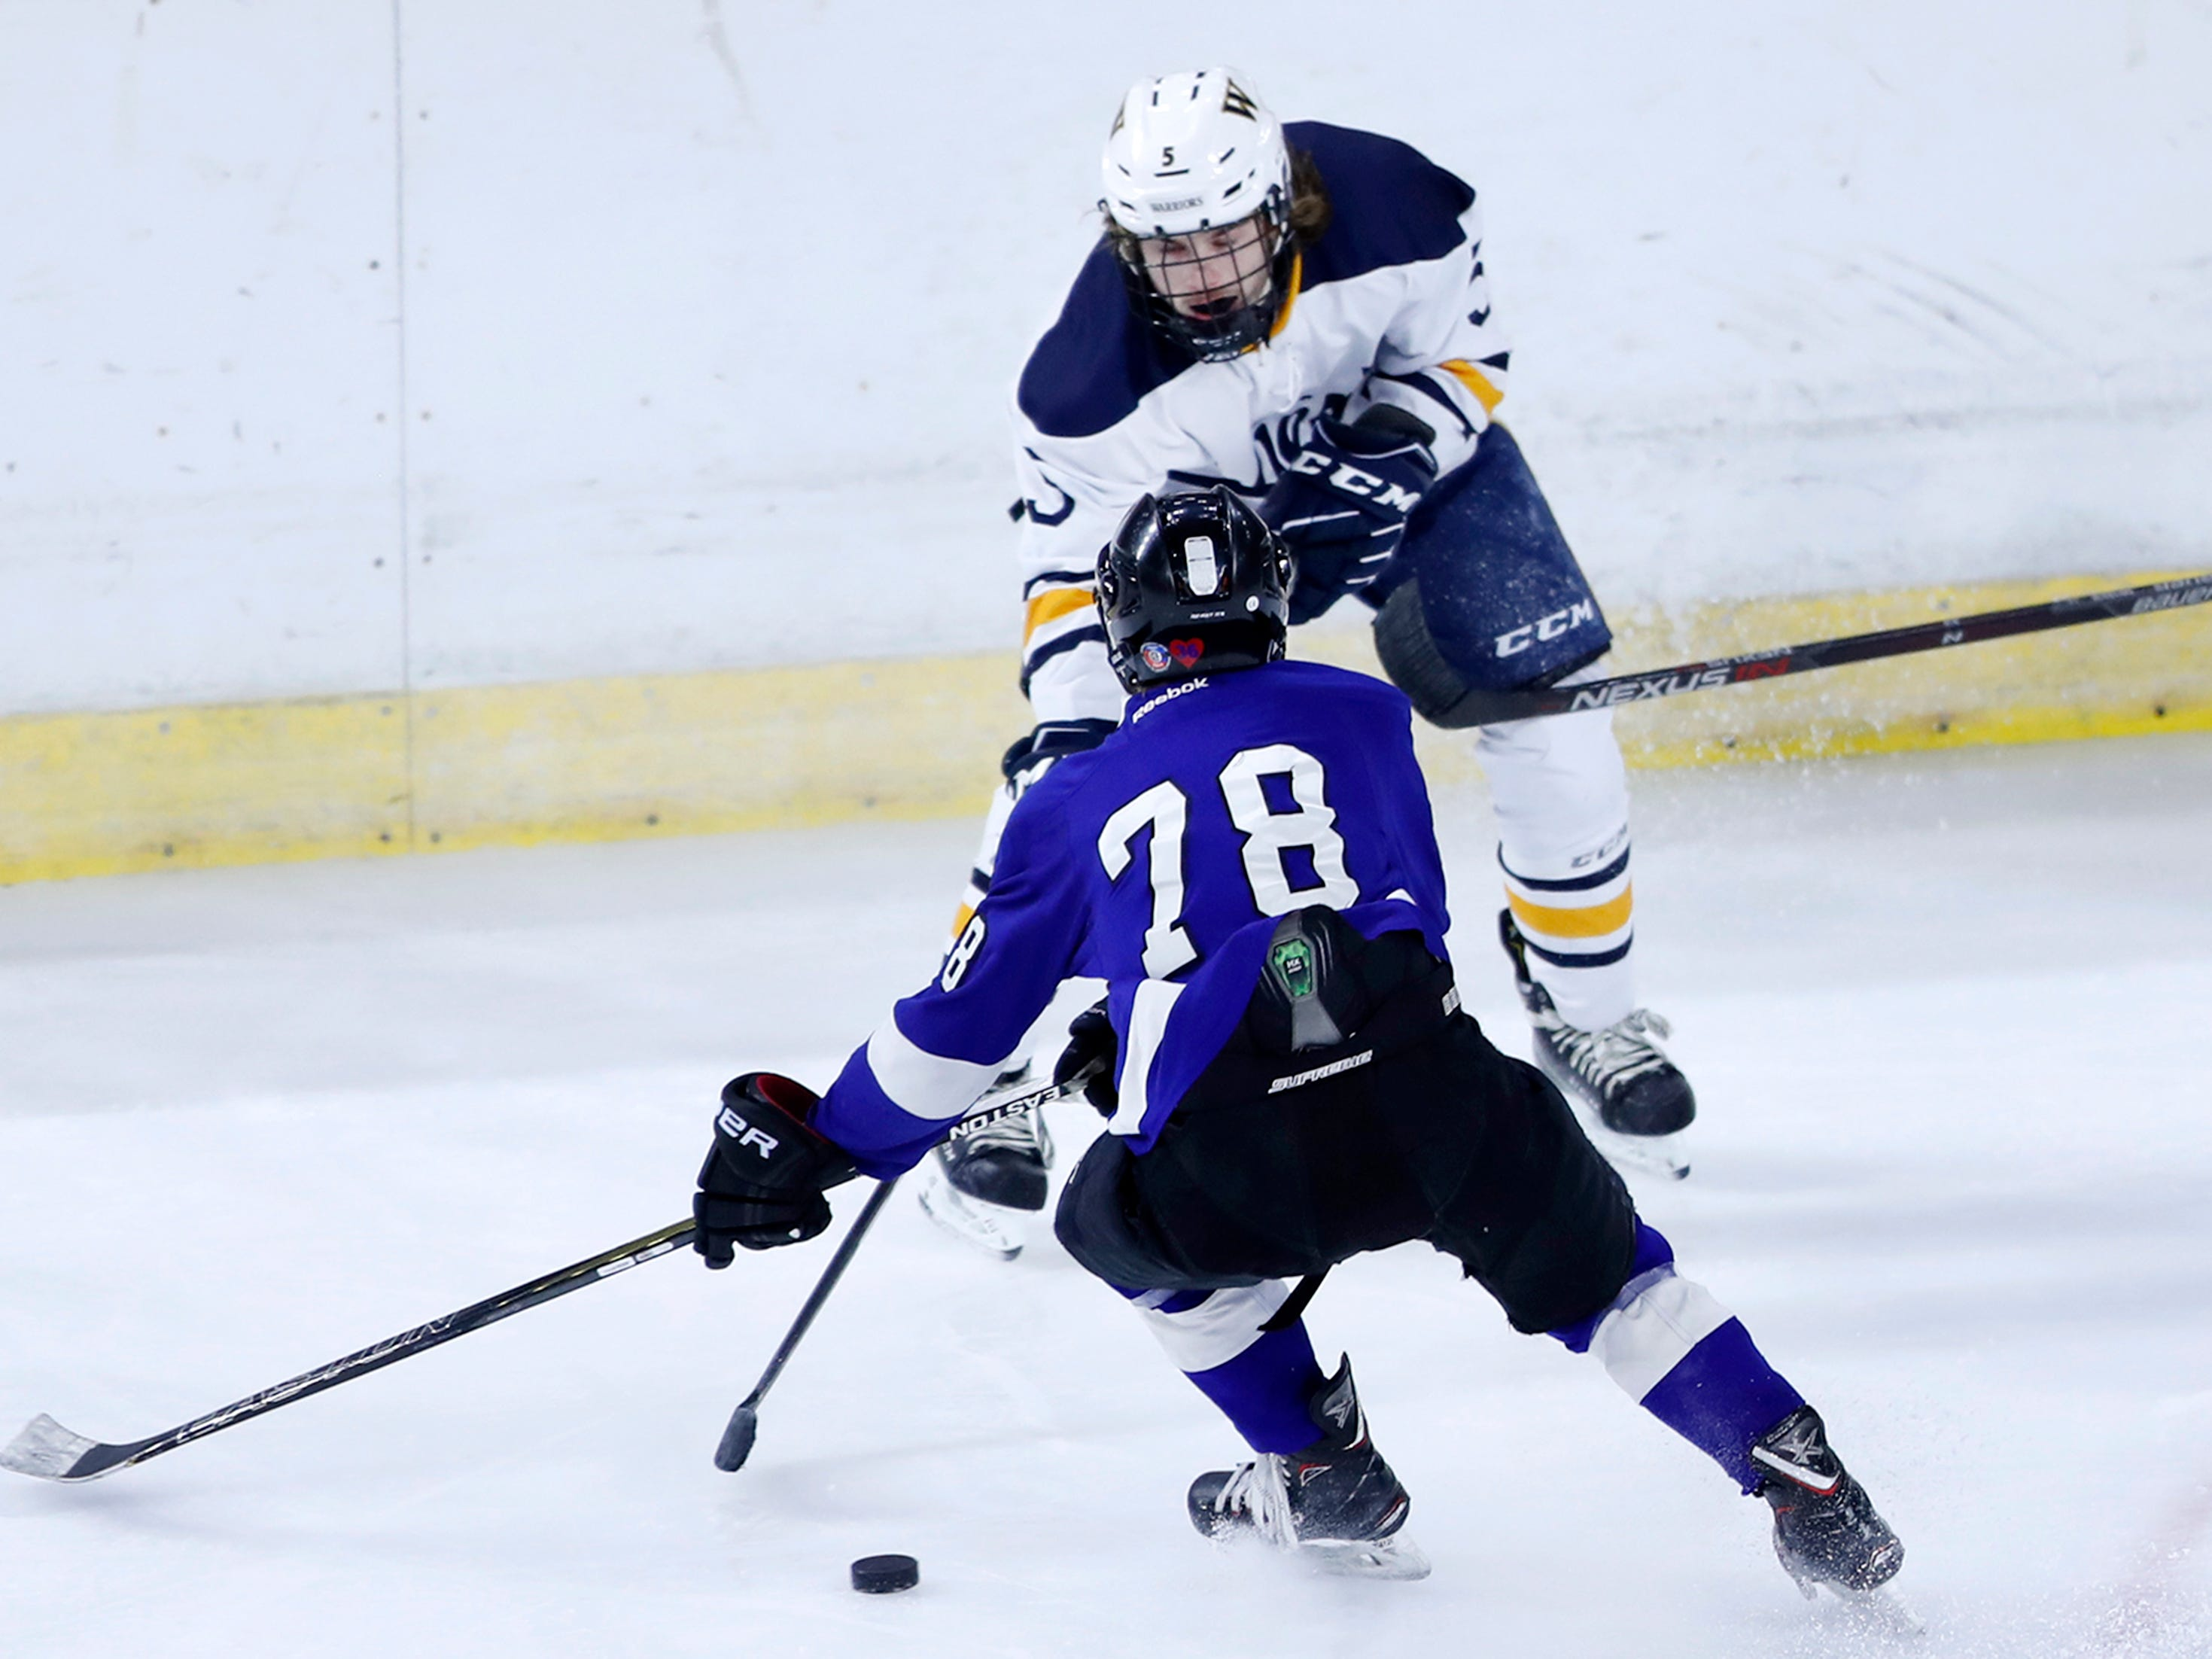 Wausau West's Jacob Cebula slips a pass through the arms of Waukesha North Co-op's Ben Sorge during the WIAA State Hockey Tournament quarterfinals Thursday, Feb. 28, 2019, at Veterans Memorial Coliseum in Madison, Wis.